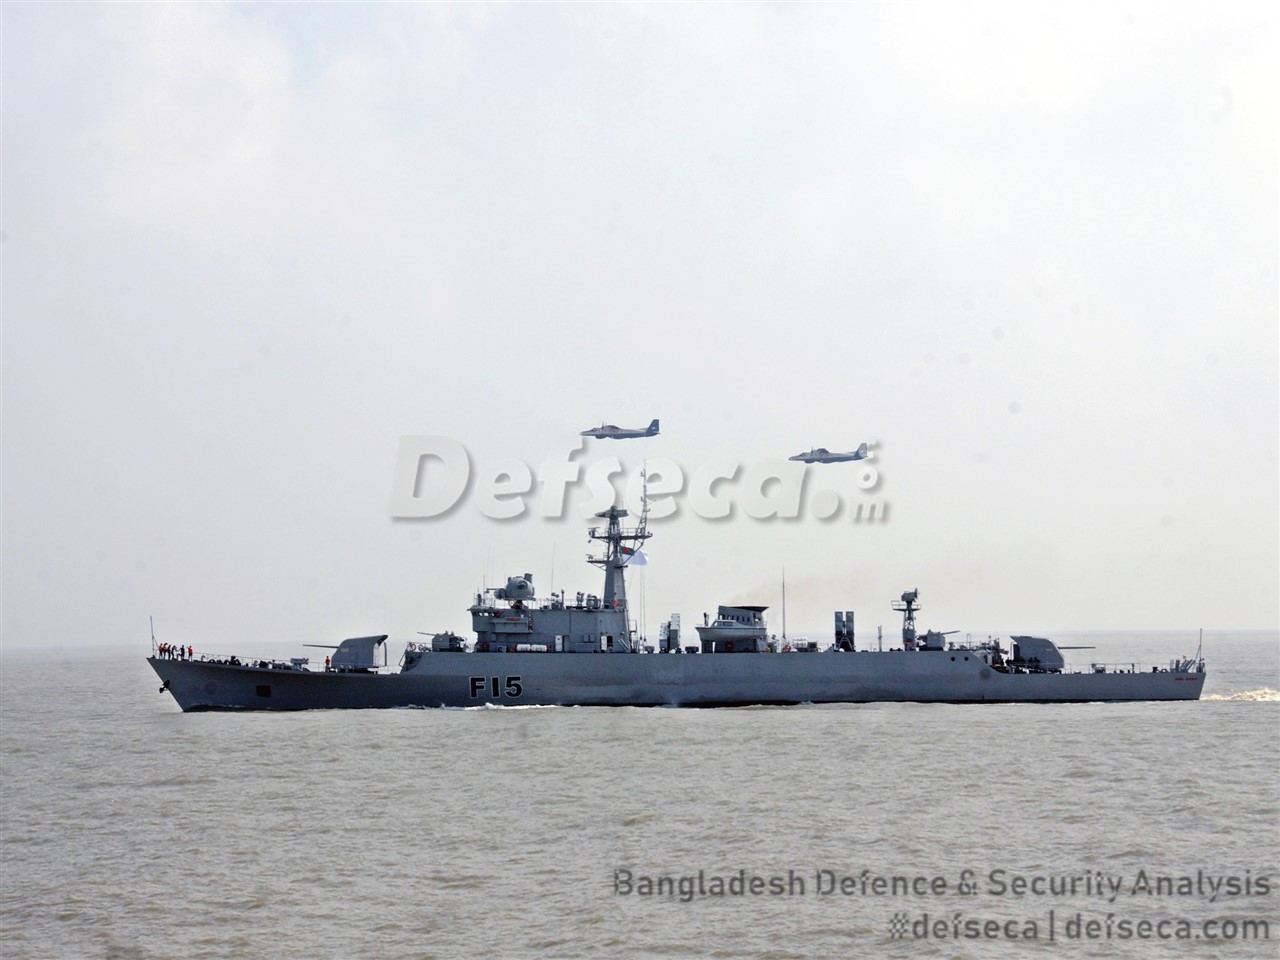 Bangladesh's armed forces at a glance